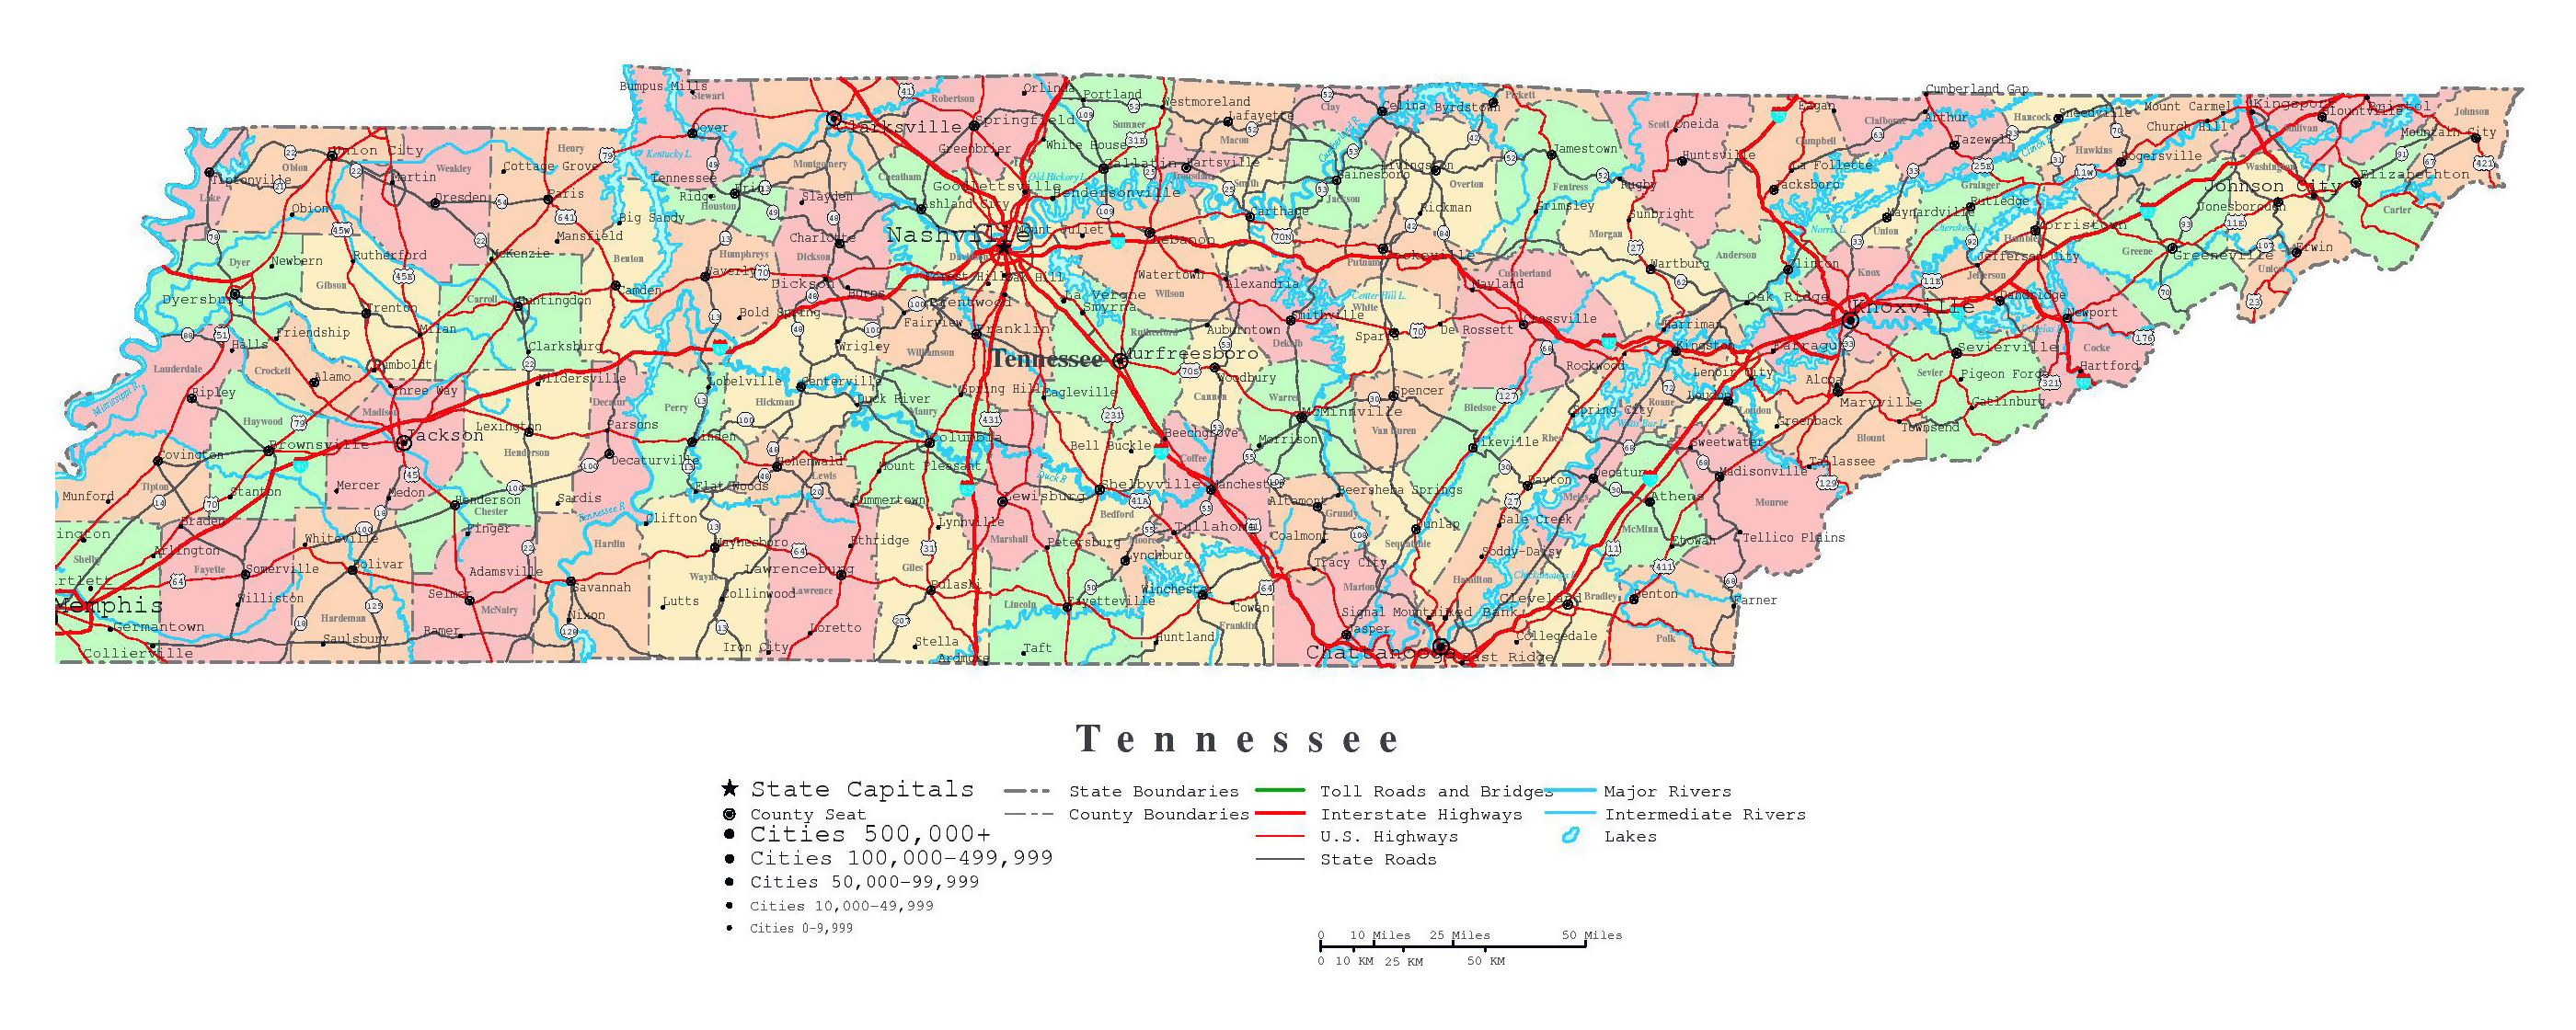 Large Detailed Administrative Map Of Tennessee State With Roads - Map of tennessee with cities